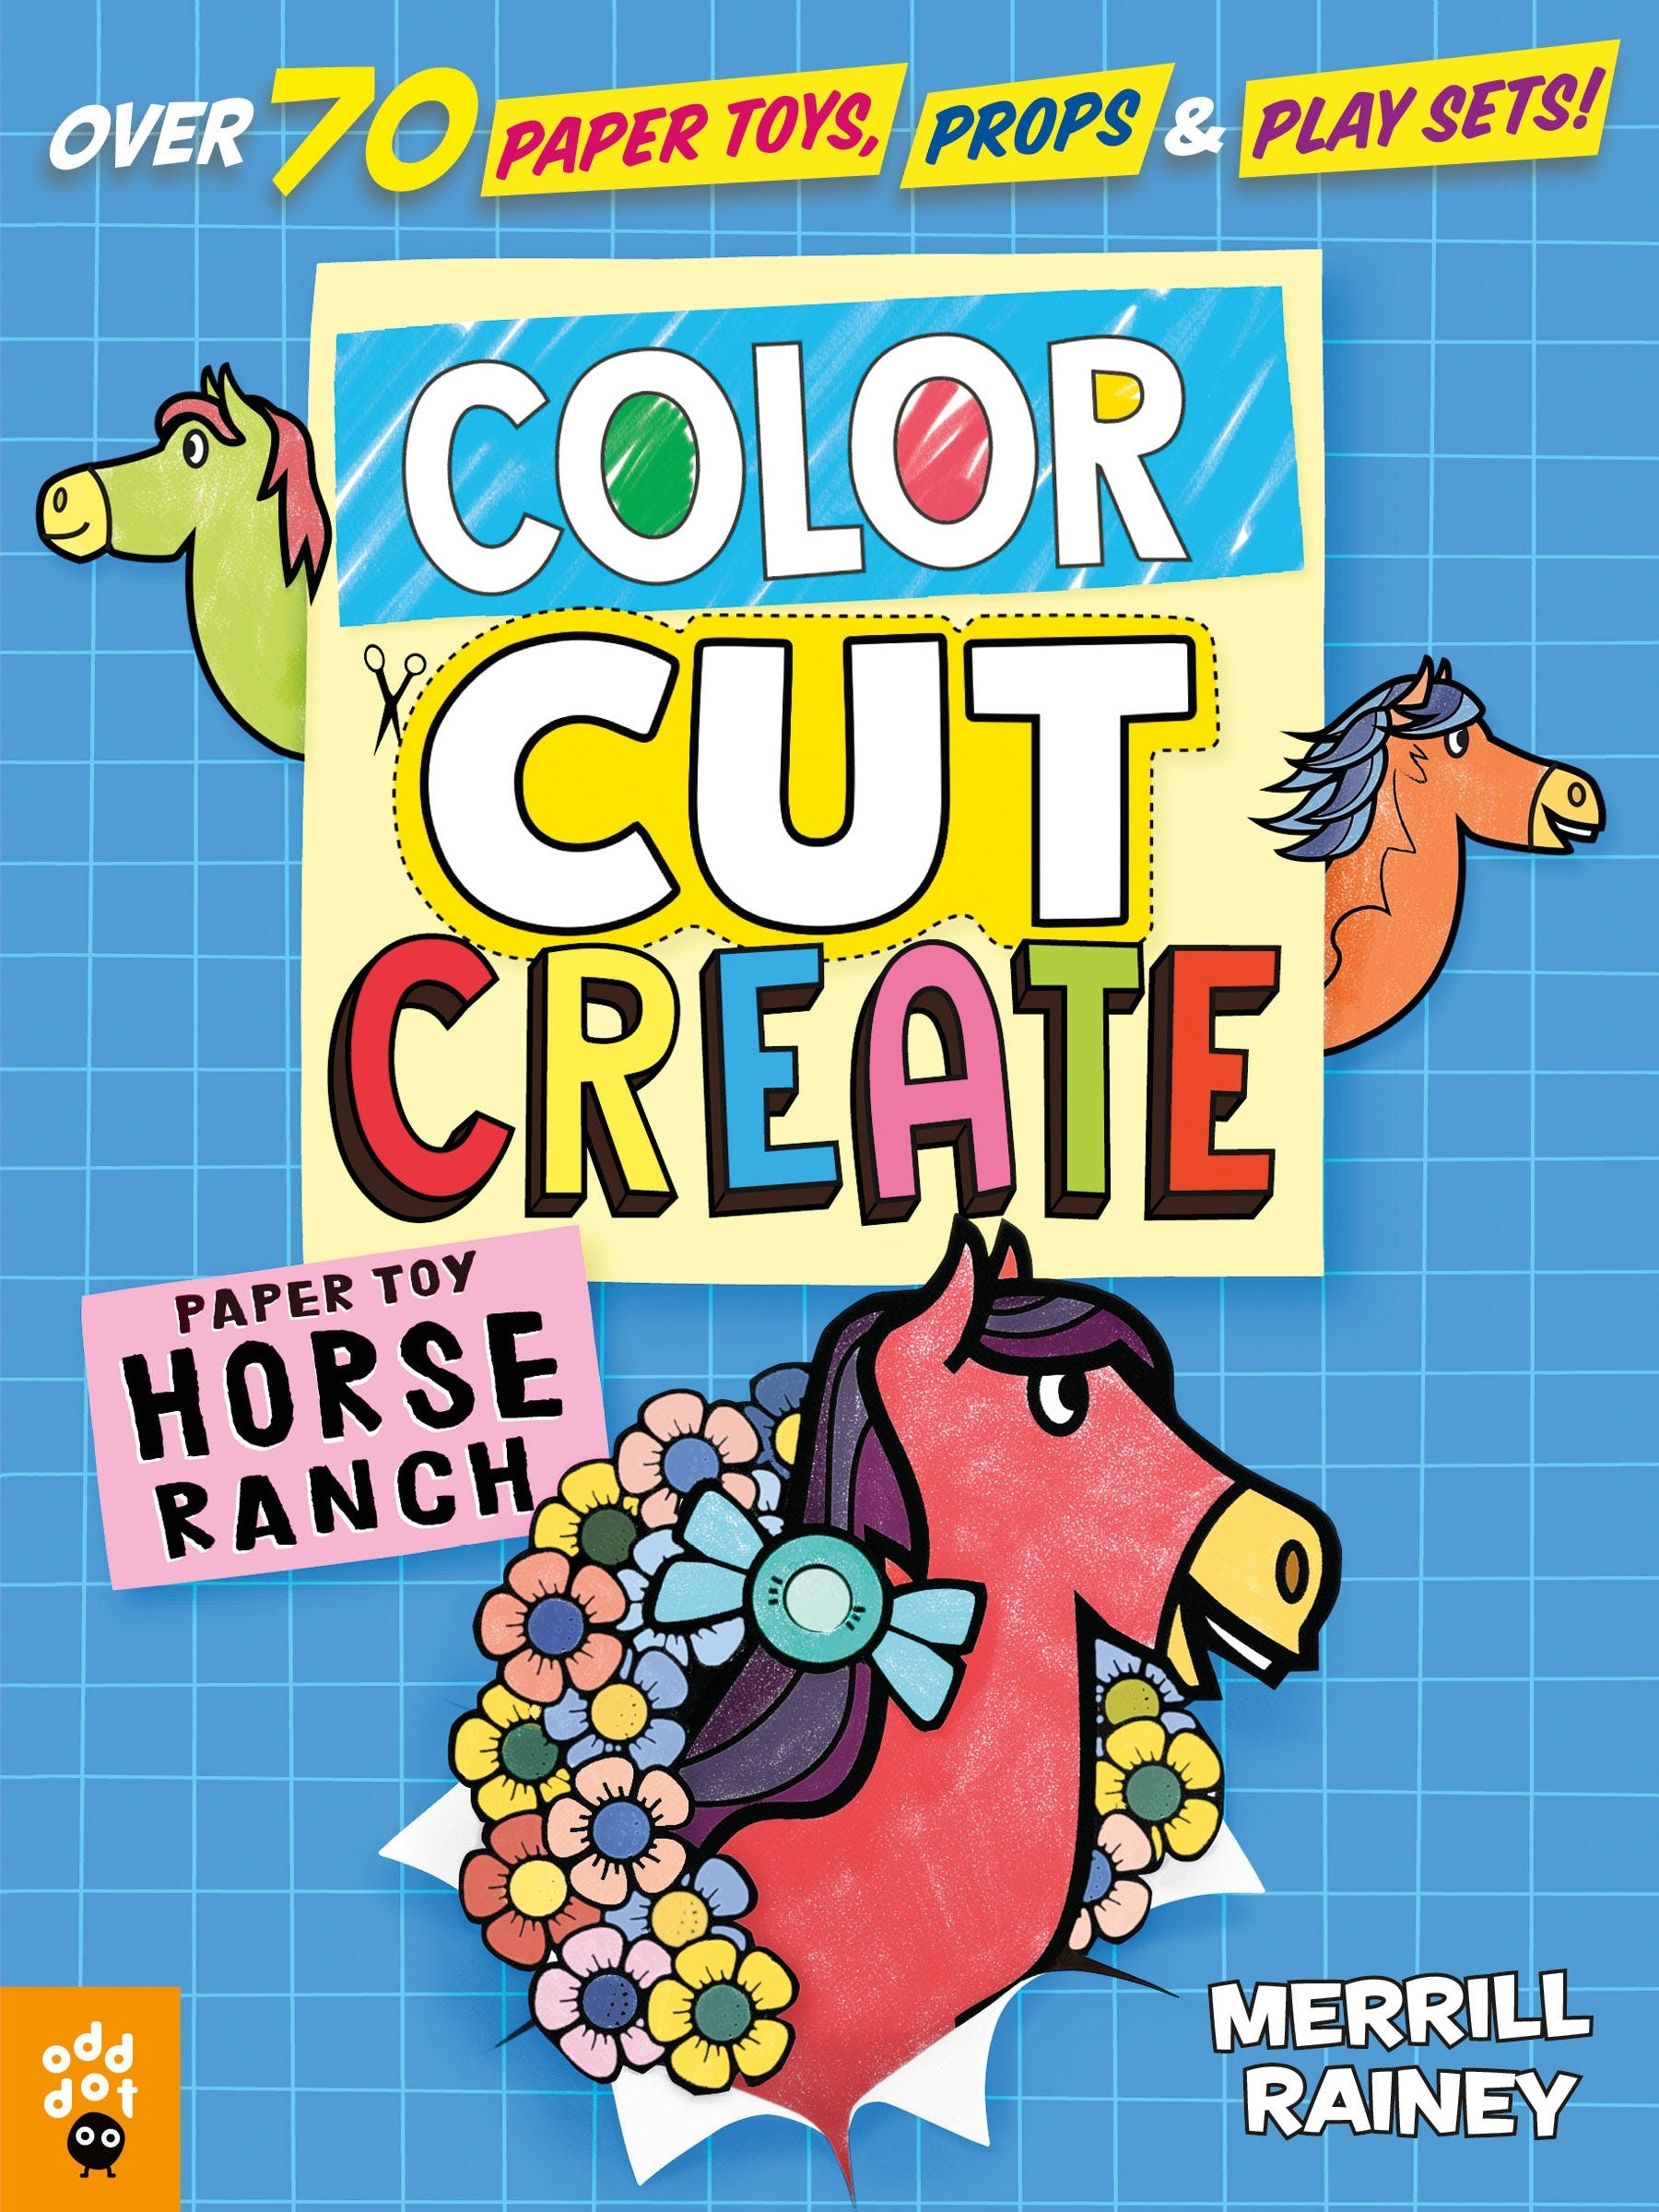 Image of Color, Cut, Create Play Sets: Horse Ranch